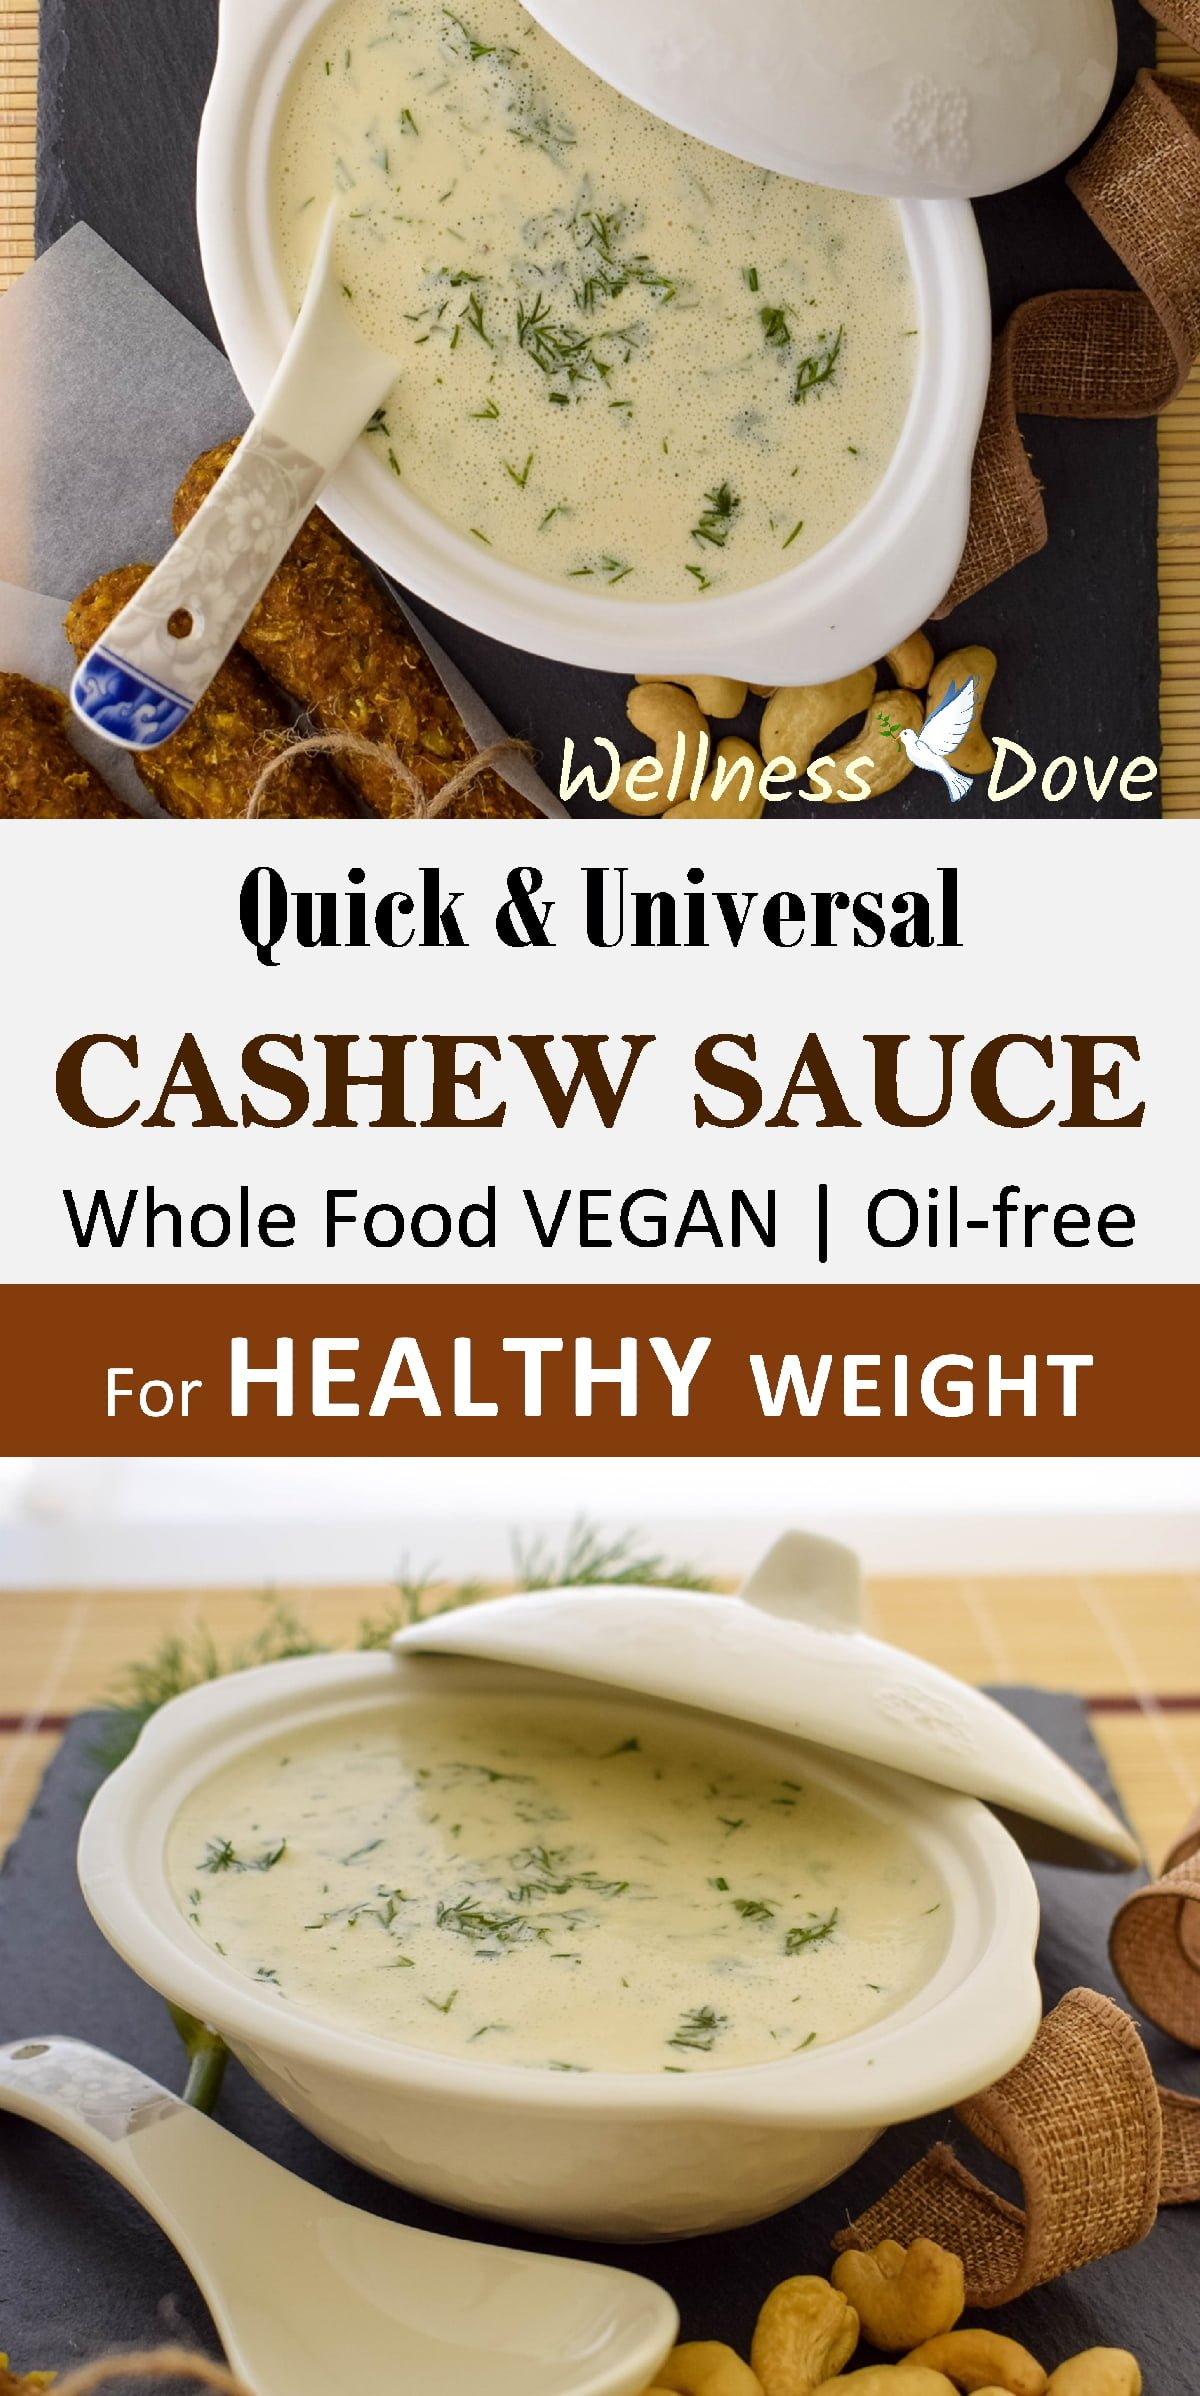 Really quick and easy nut sauce recipe!Super creamy texture!And perfectly healthy with whole natural plant foods only, no oils or sugar!